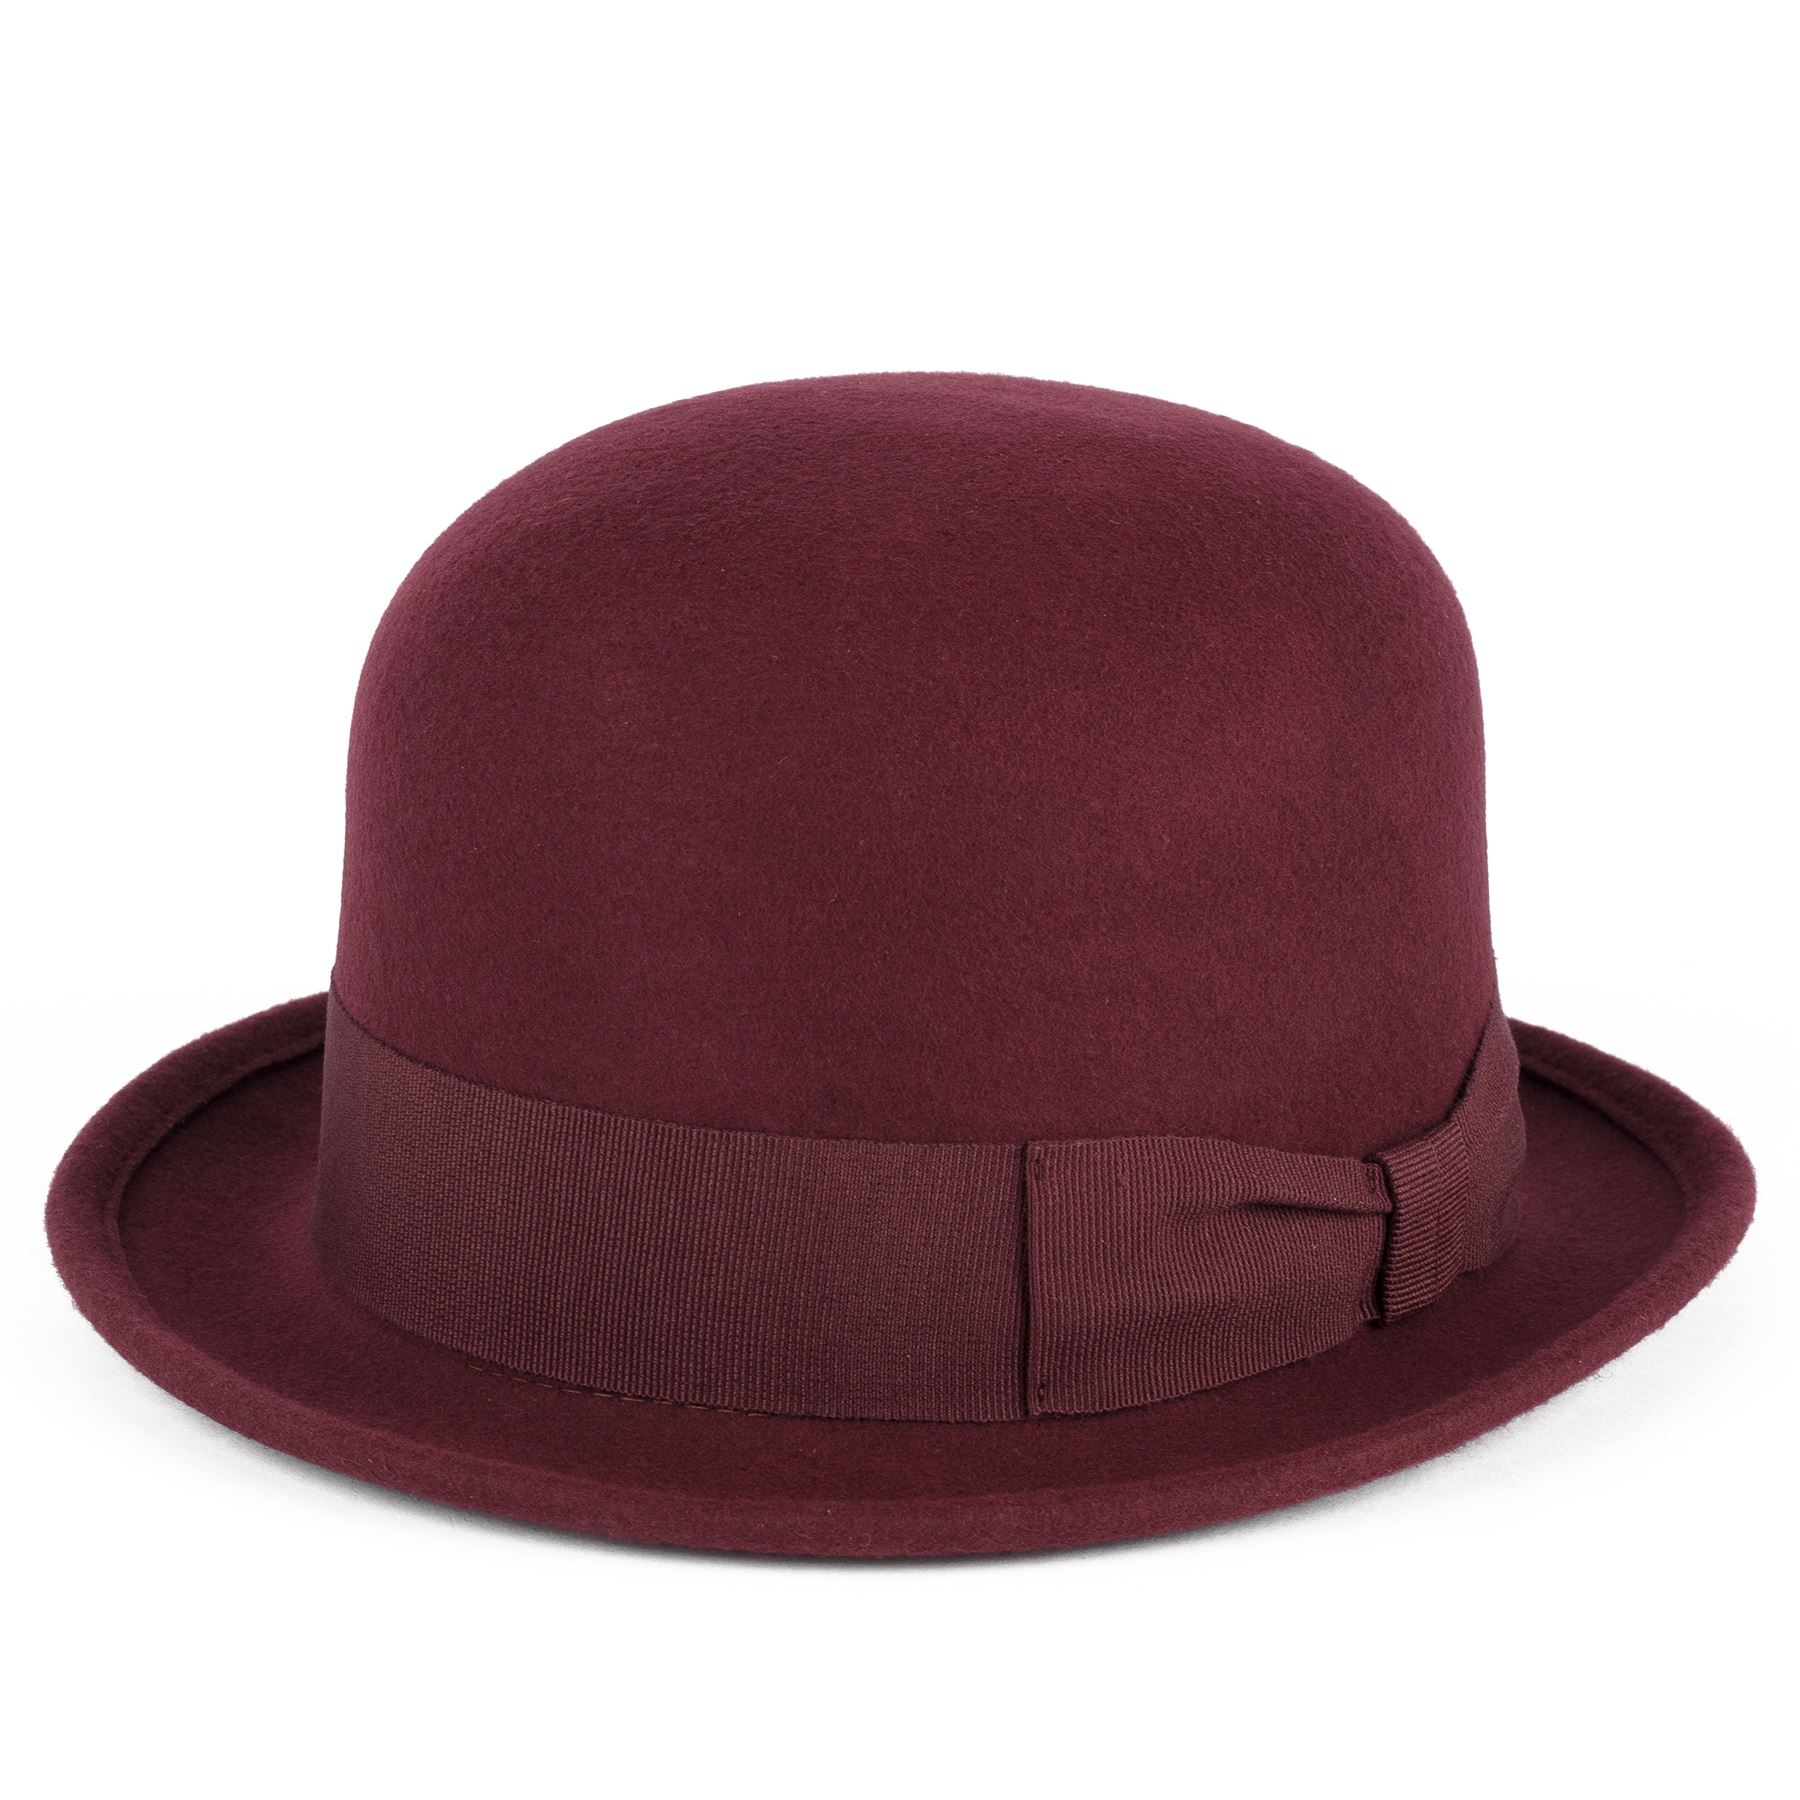 100 Wool Bowler Hat With Grosgrain Band Handmade in Italy Burgundy S ... 06110ffde5d